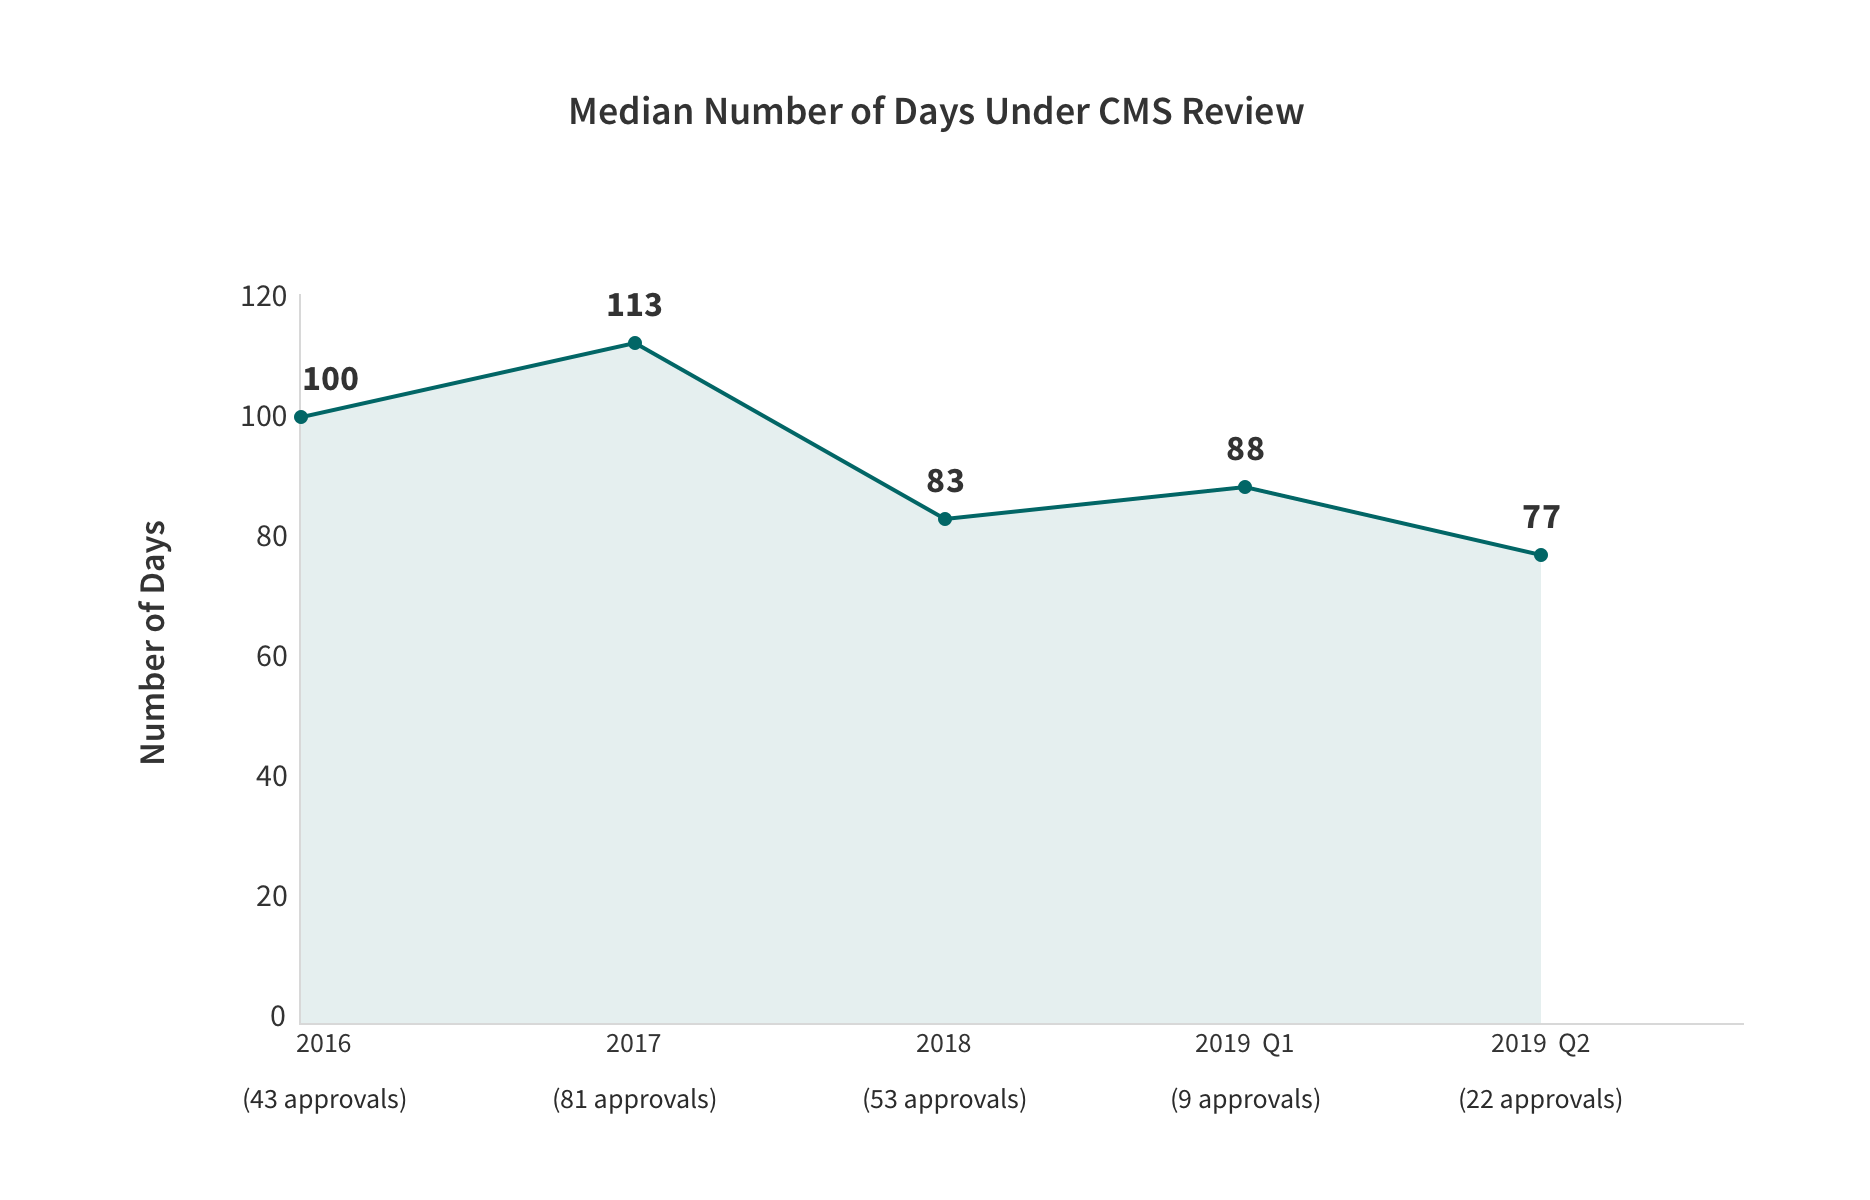 1915(c) Waiver Renewals - Median Number of Days under CMS Review Line Graph with the categories and values. Described in the table below